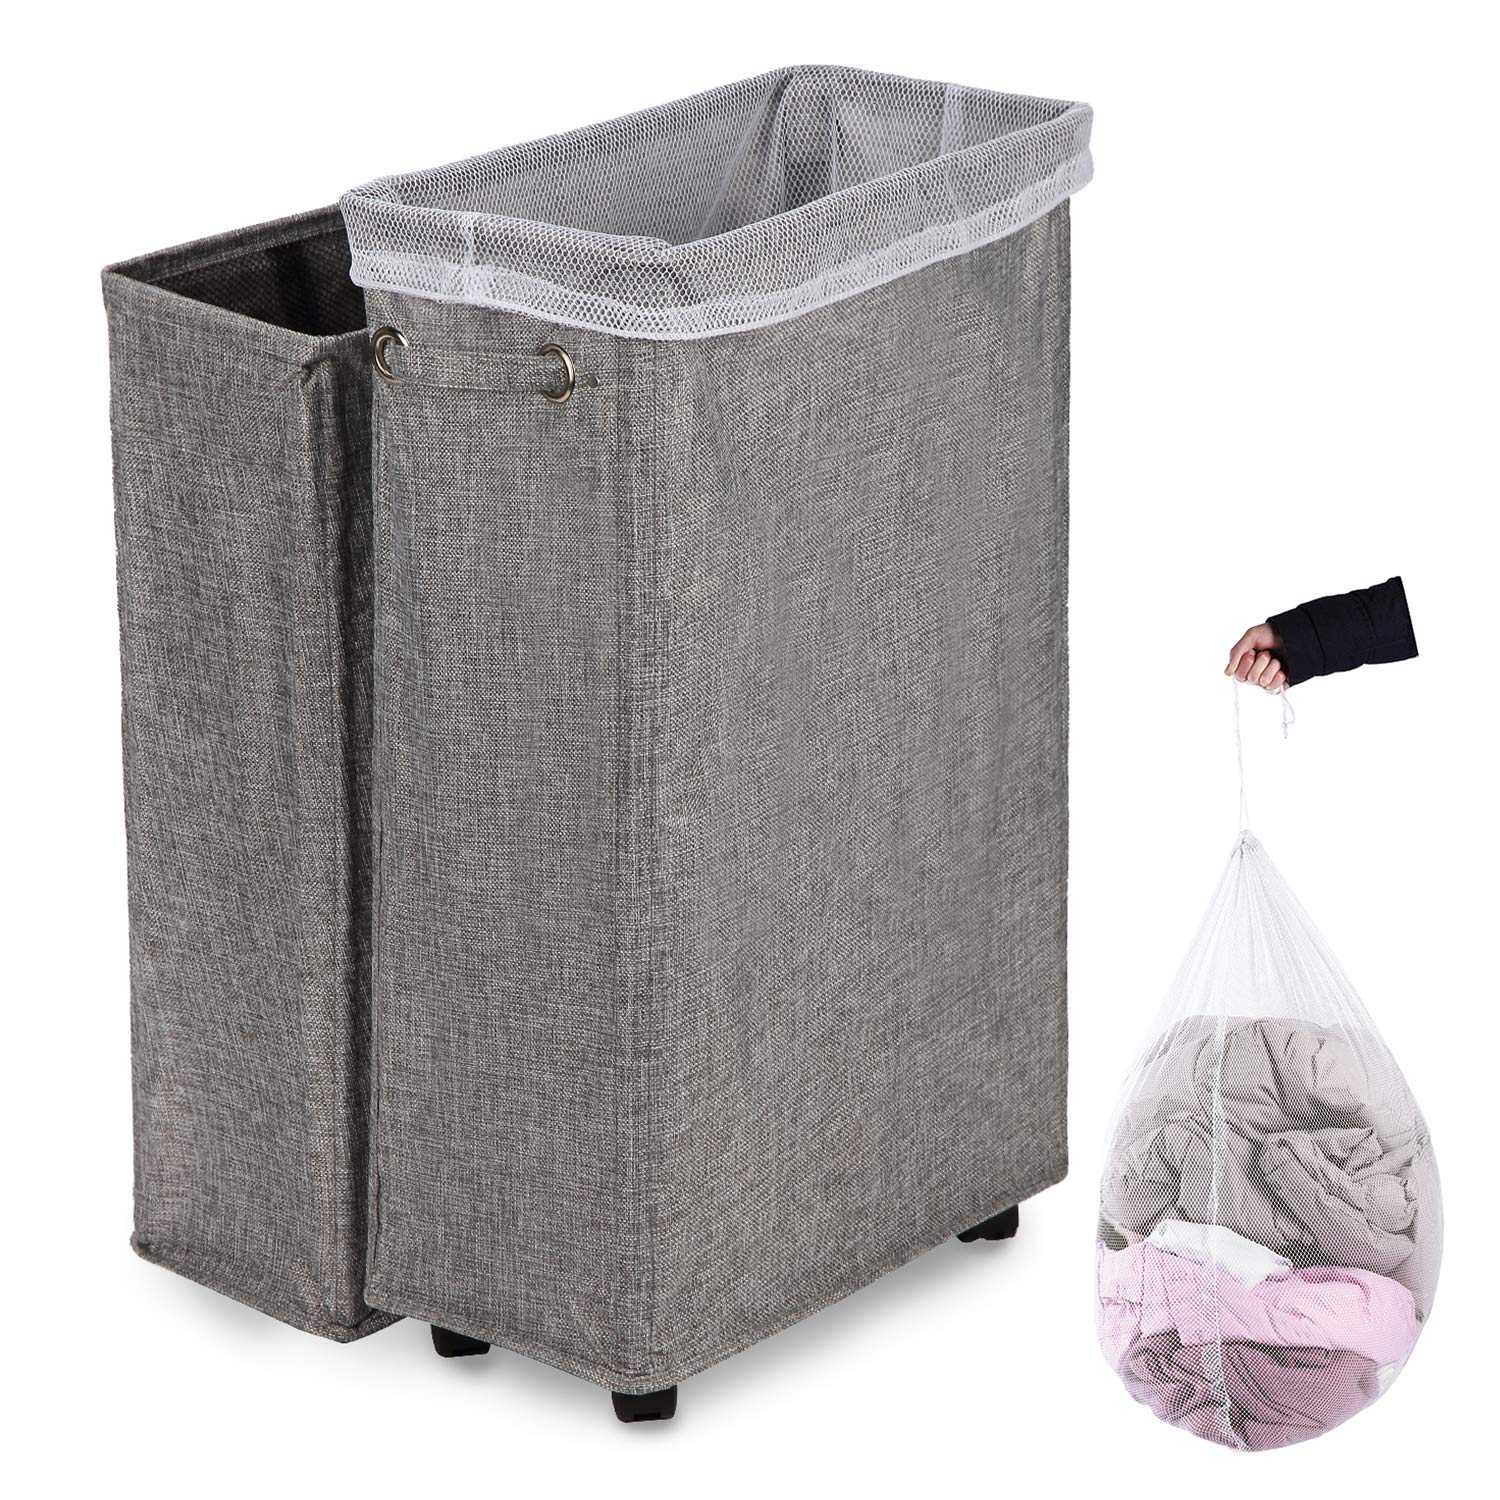 Caroeas Laundry Hamper 27 Burlap Rolling Laundry Hamper Collapsible Tall Slim Laundry Basket With Breathable Wash Bag Waterproof Dustproof Laundry Cart On Wheels Grey Linen